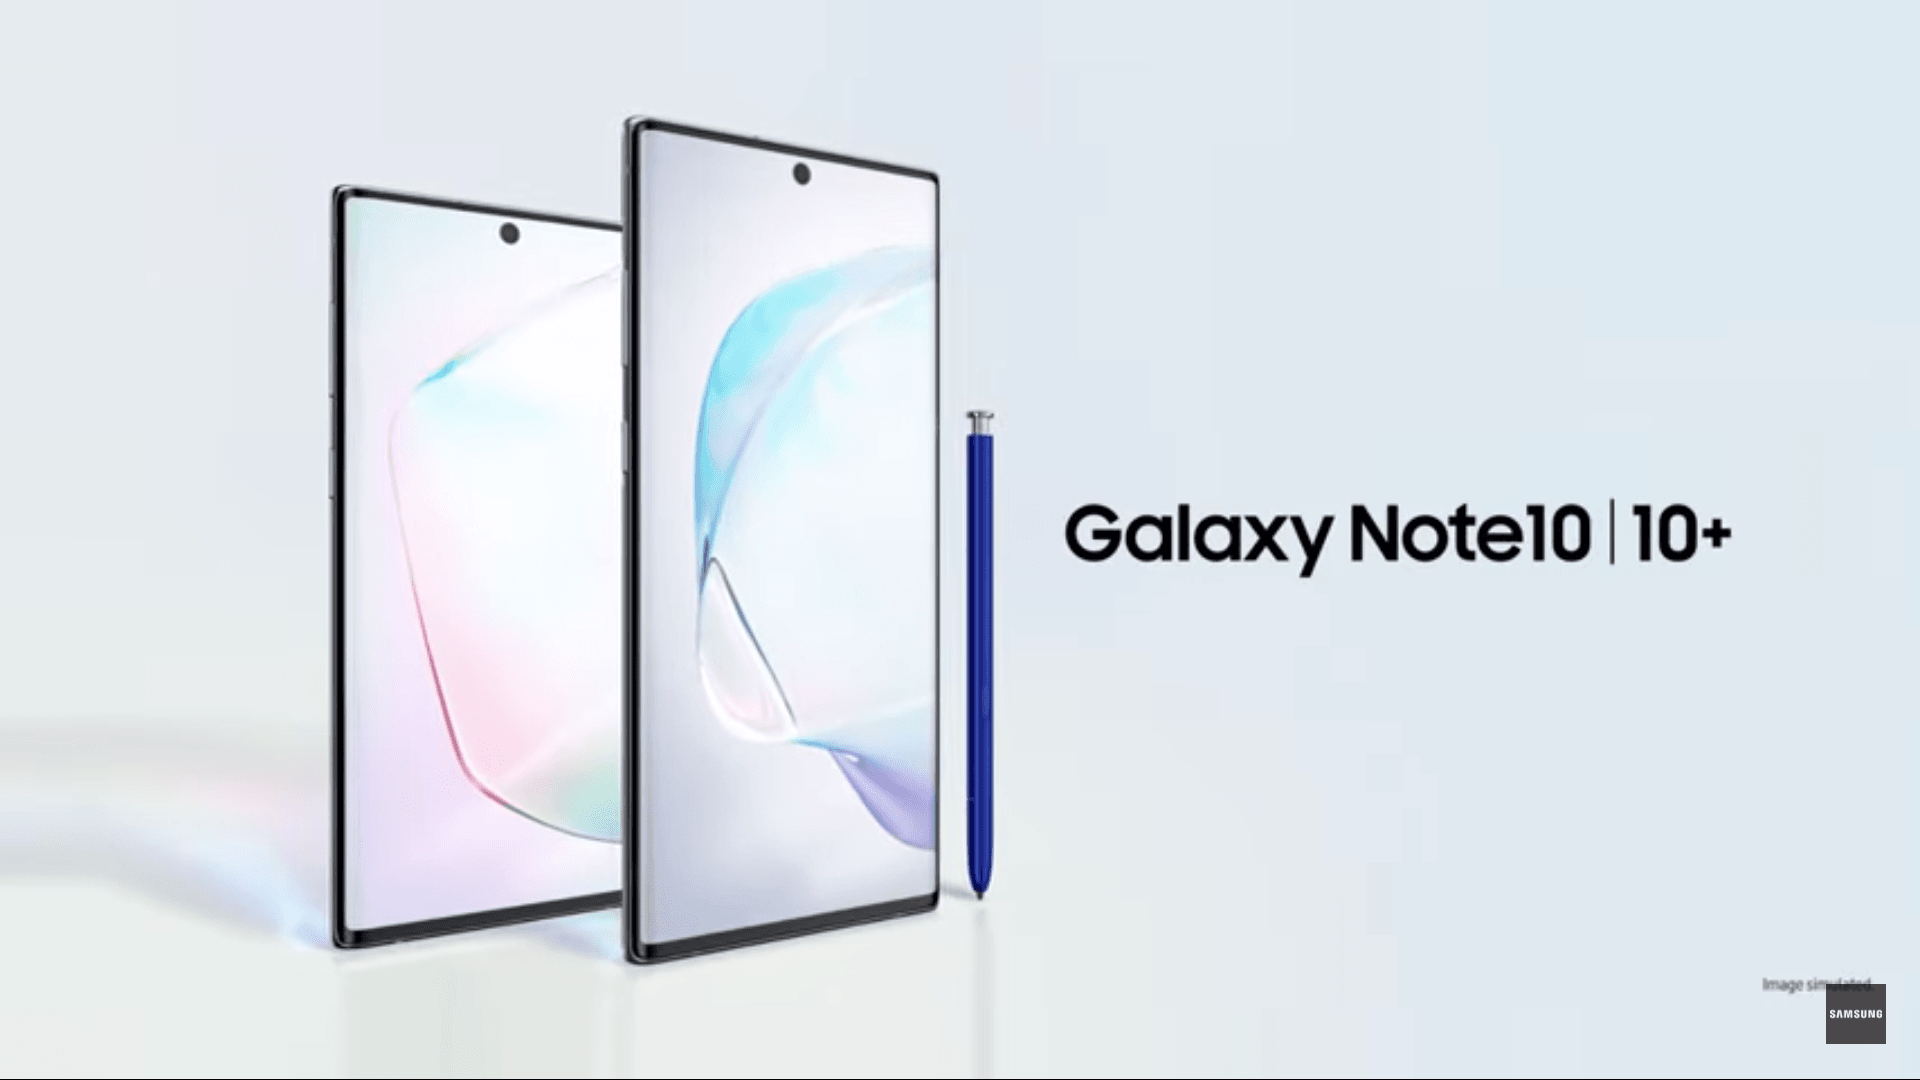 Galaxy Note 10 preorder deals